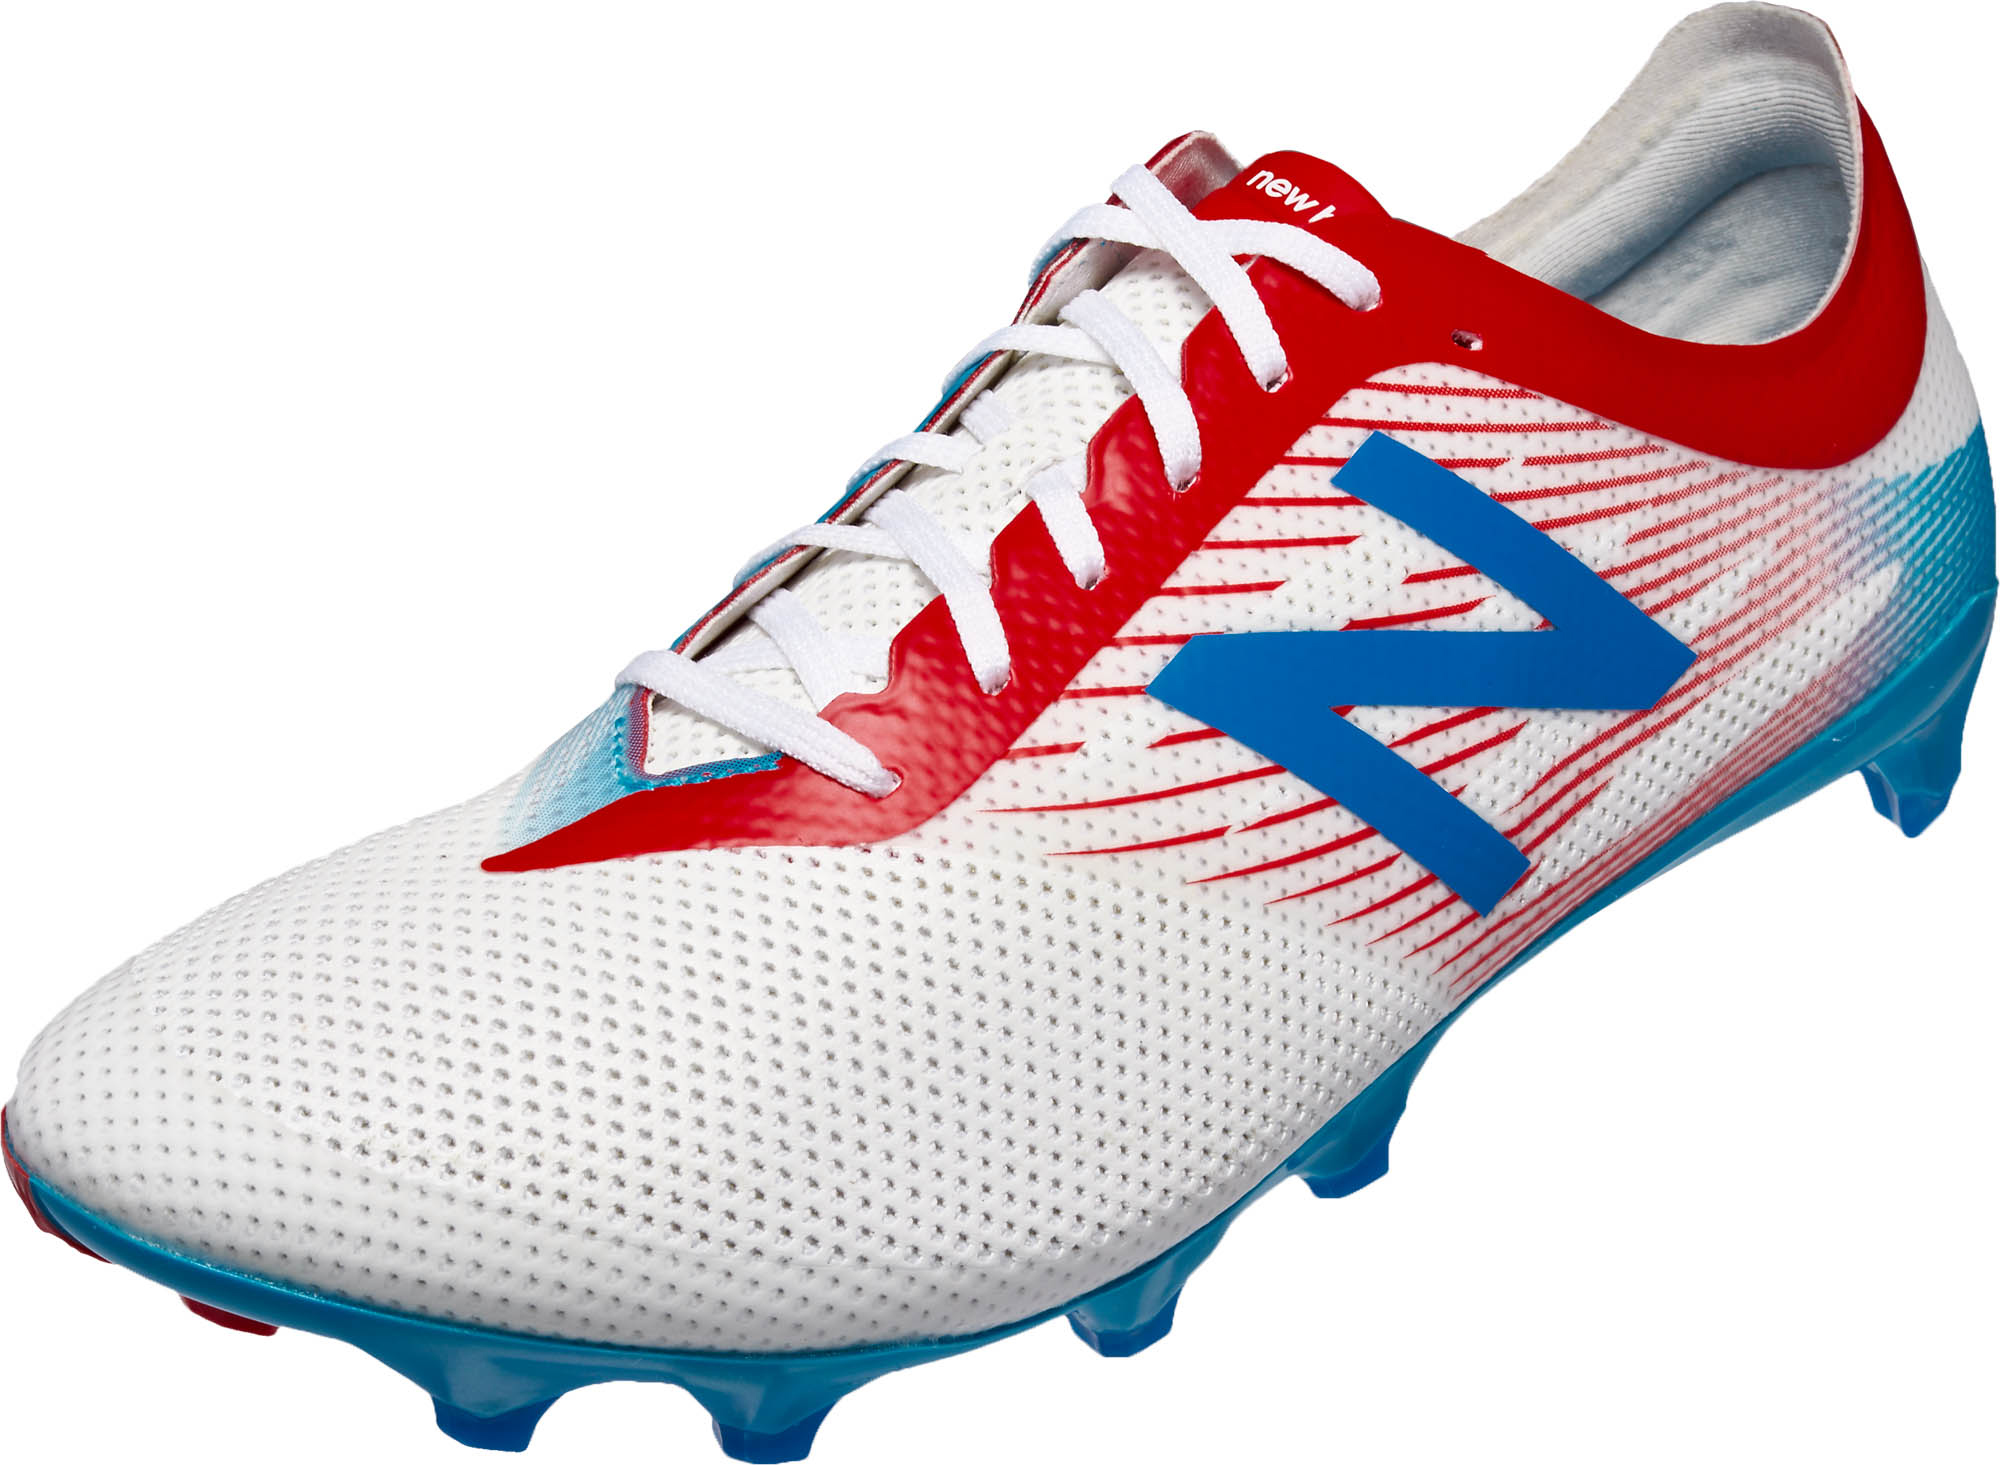 5c75cdd4a1d New Balance Furon 2.0 Pro FG - New Balance Soccer Shoes